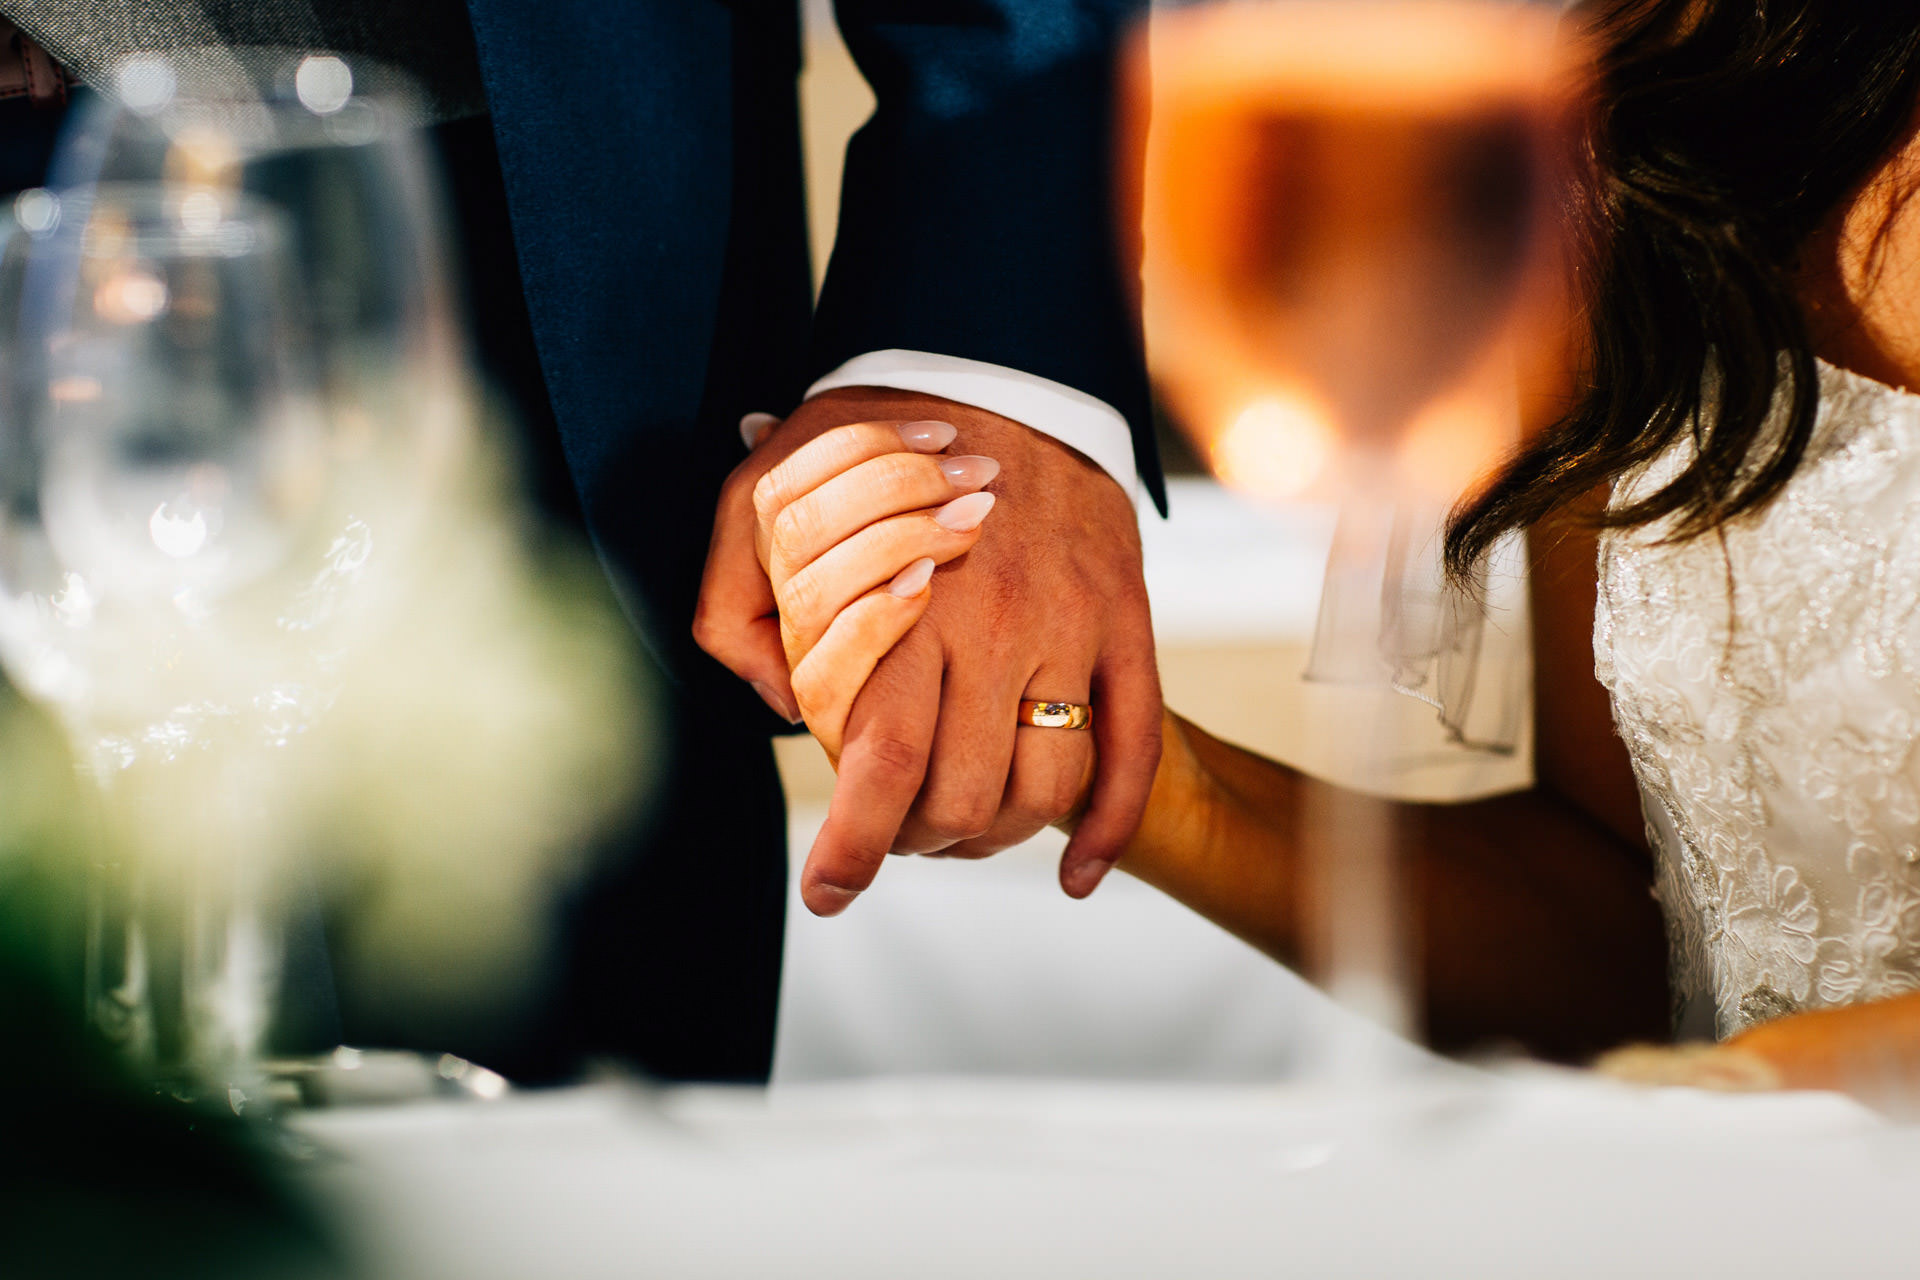 Best wedding photography 2016 - holding hands close up